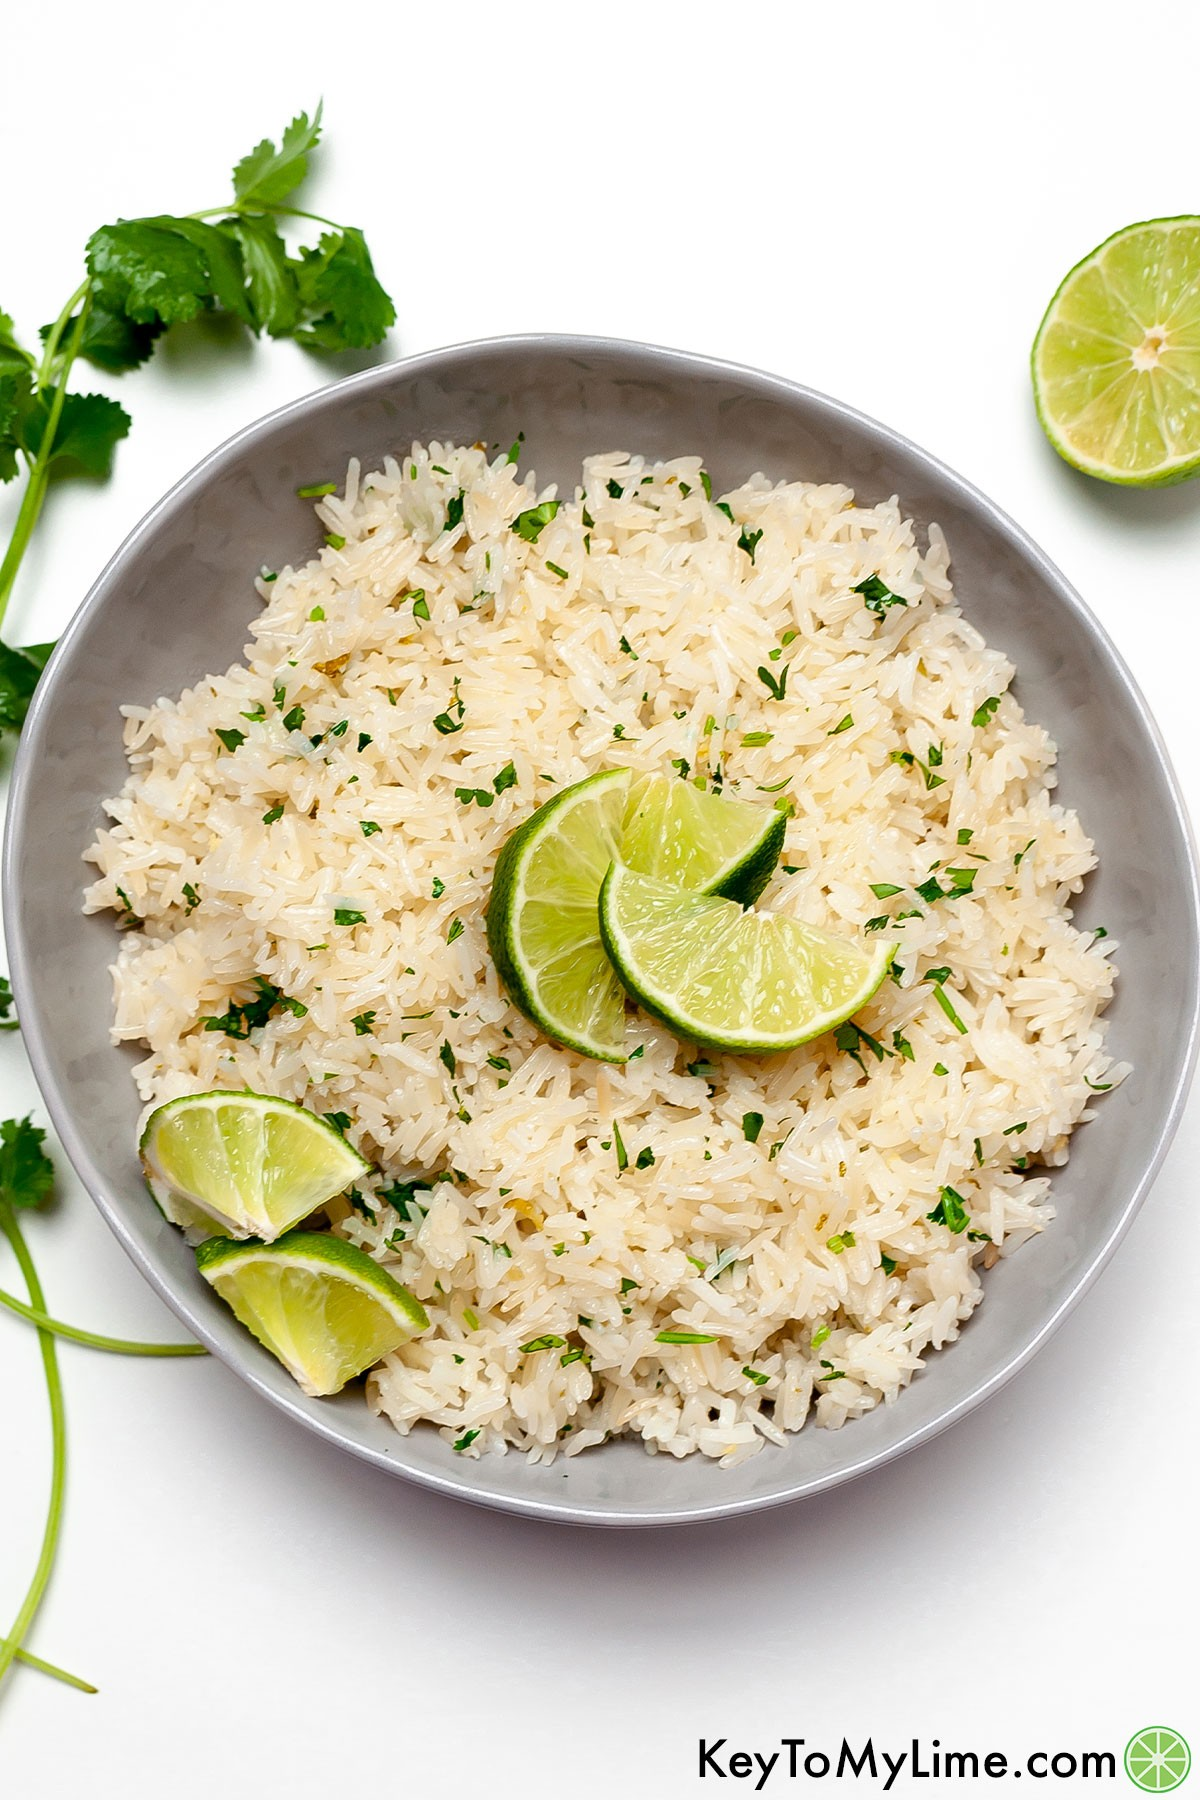 A bowl of copycat Chipotle cilantro lime rice in a bowl surrounded by lime wedges and herbs.